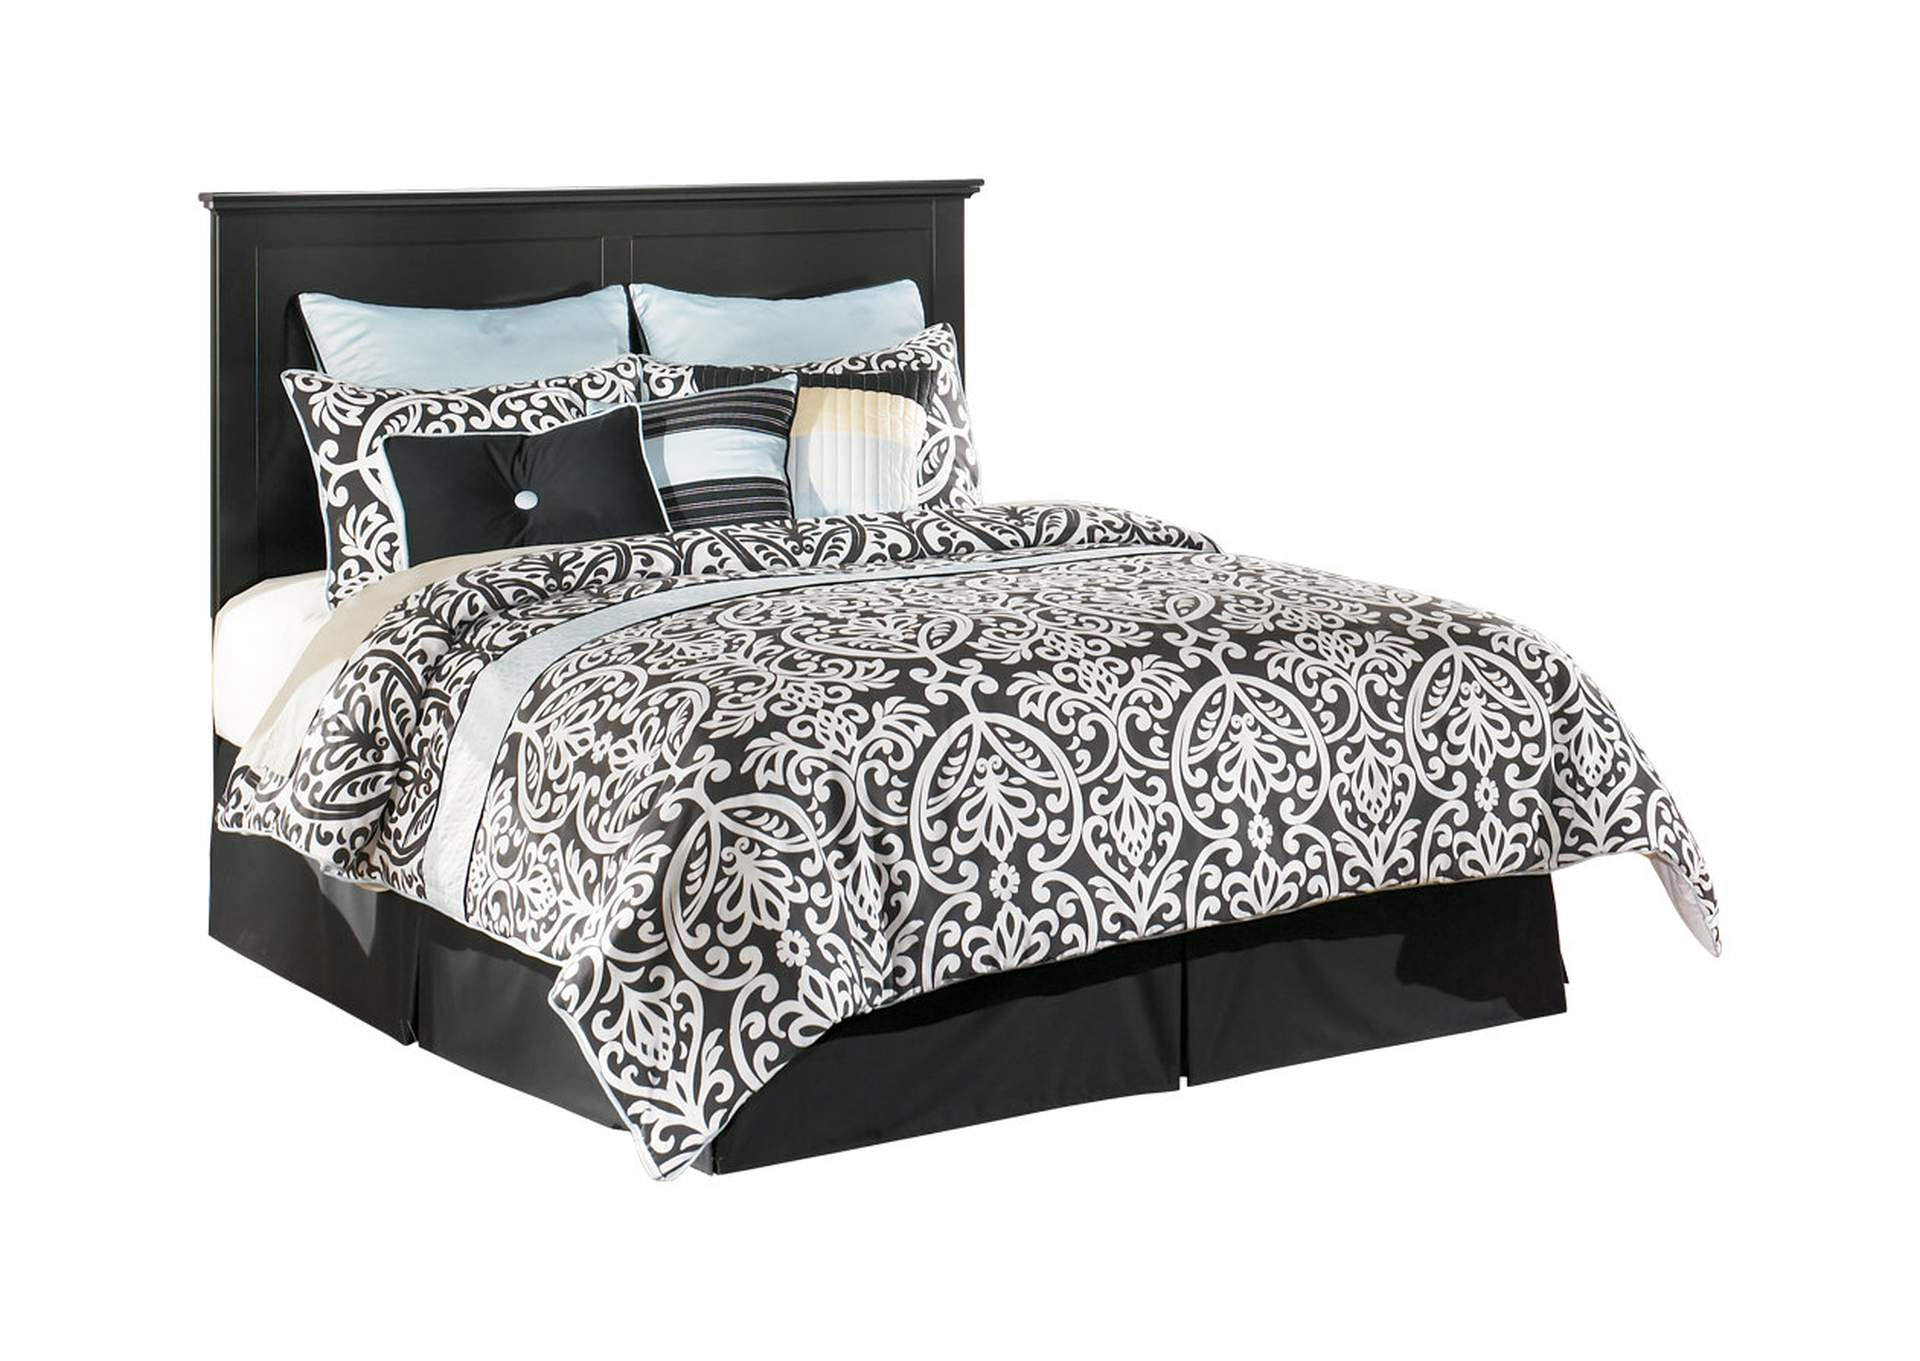 Maribel Queen/Full Panel Headboard,Direct To Consumer Express